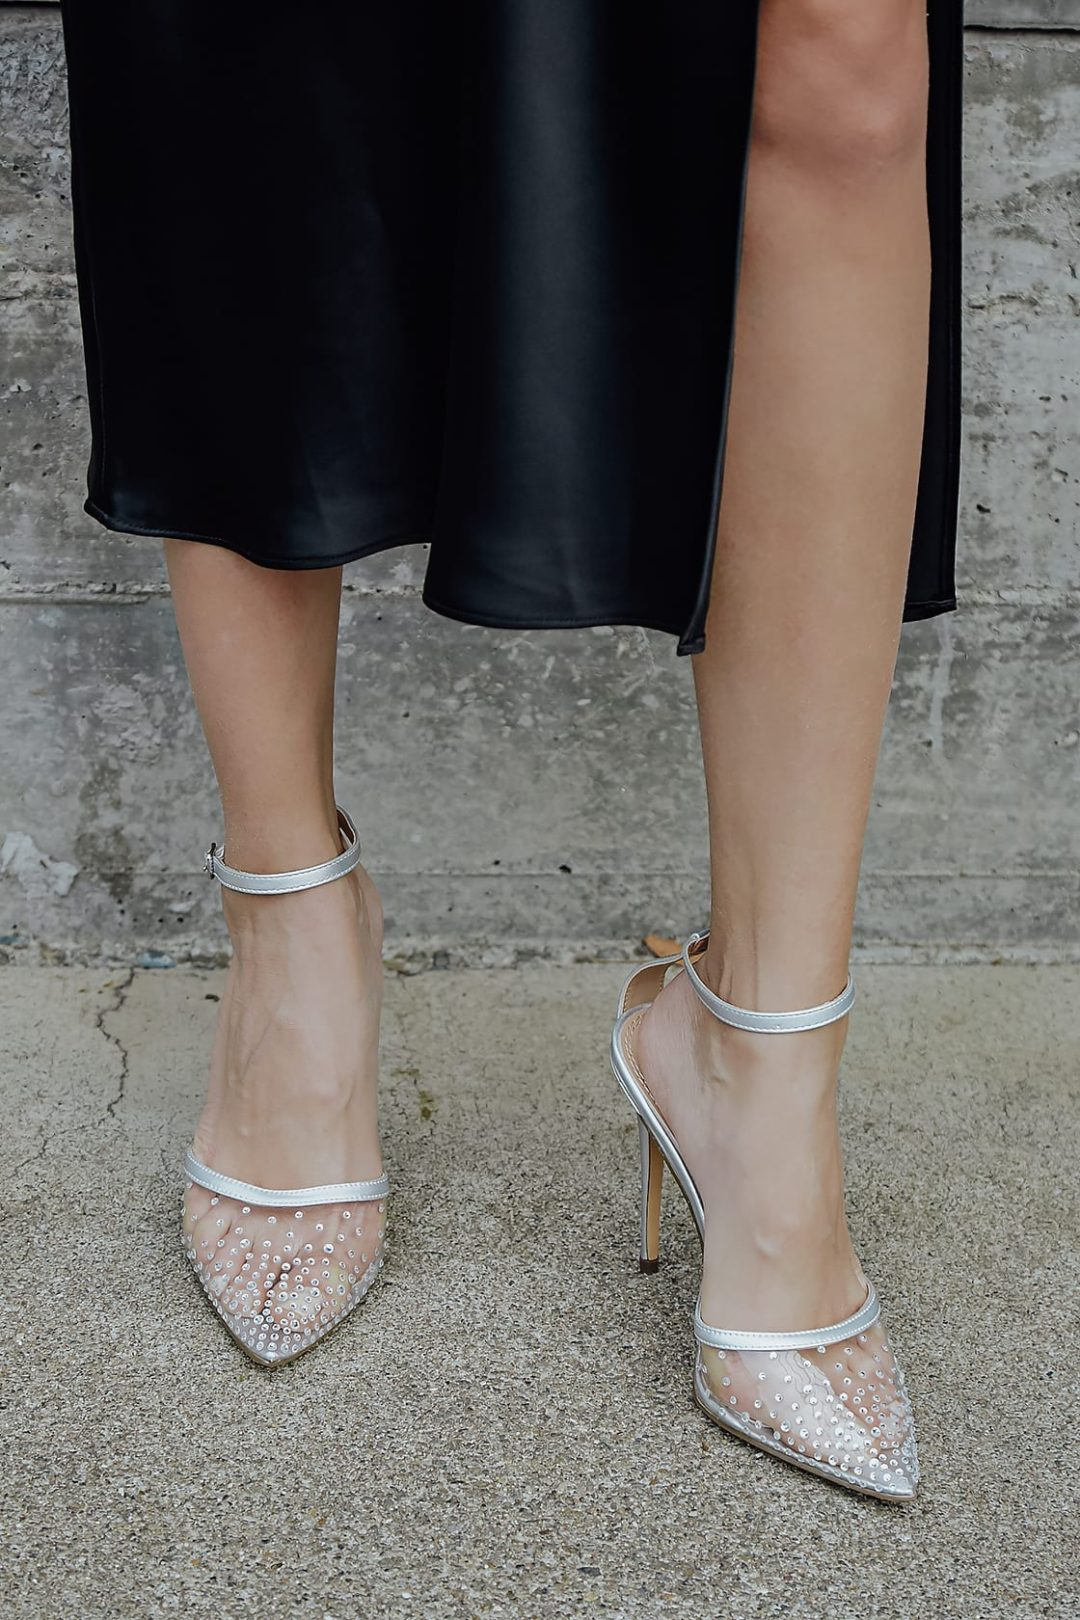 Best Shoe Colors To Wear With A Red Dress: Minimalist silver heels